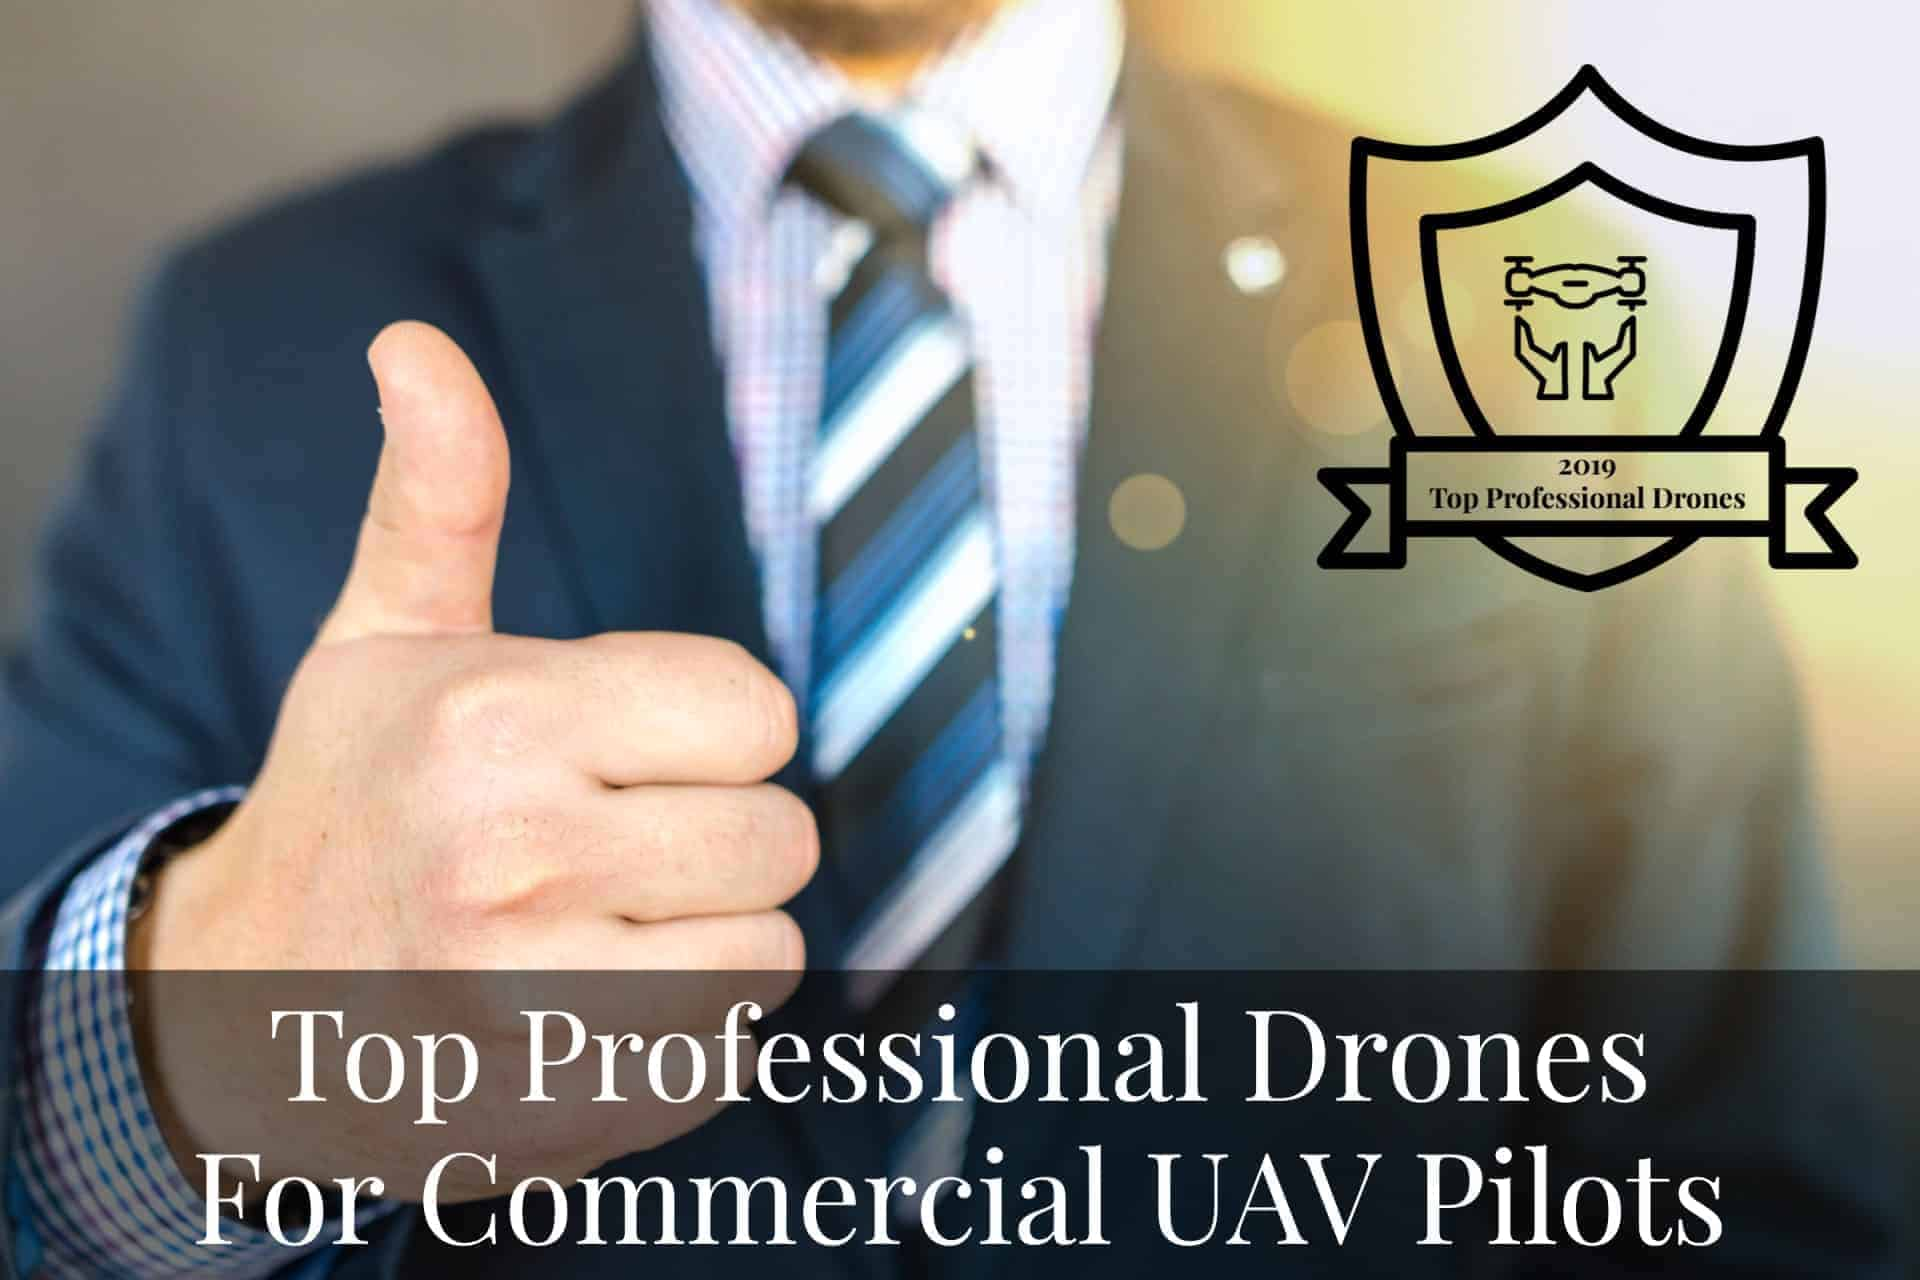 Recommended Top Professional Drones For Commercial UAV Pilots in 2019